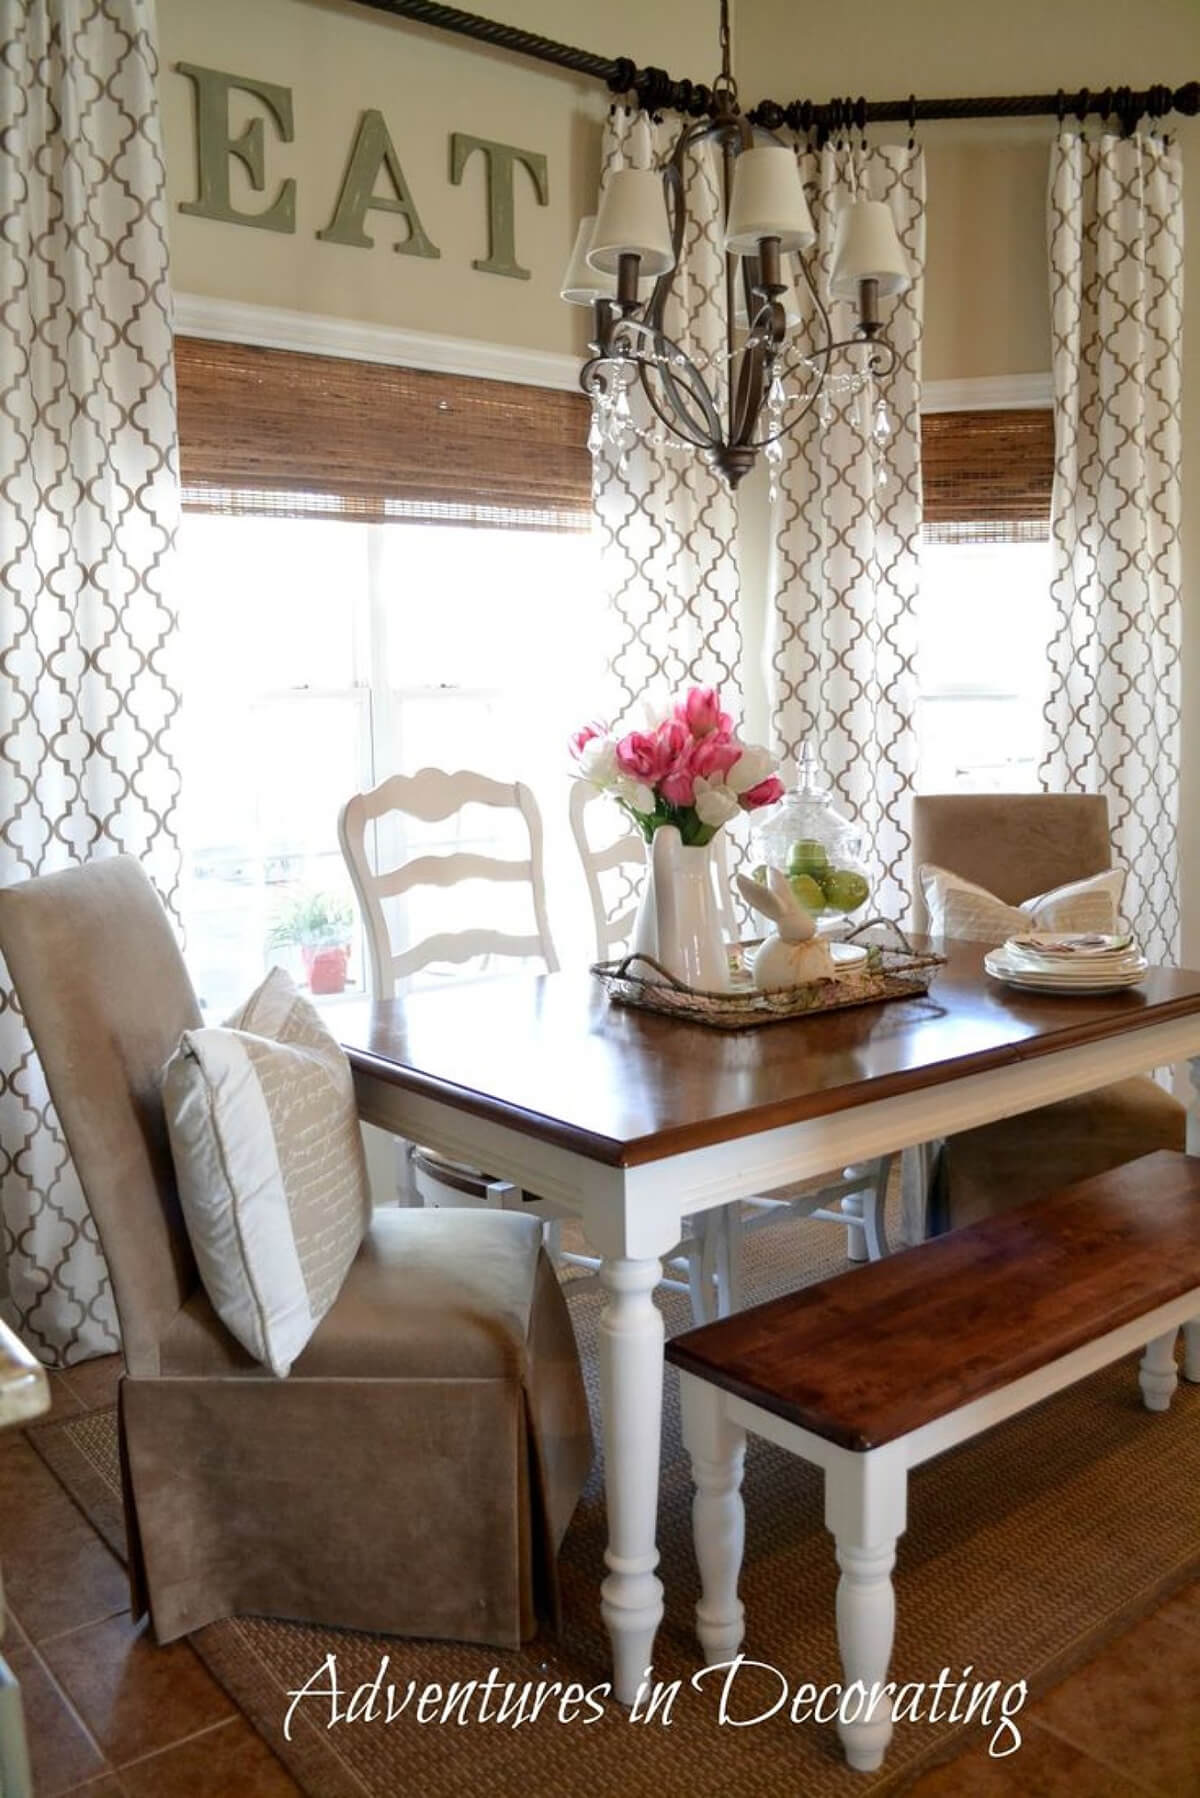 Classy Patterned Curtains In The Dining Room